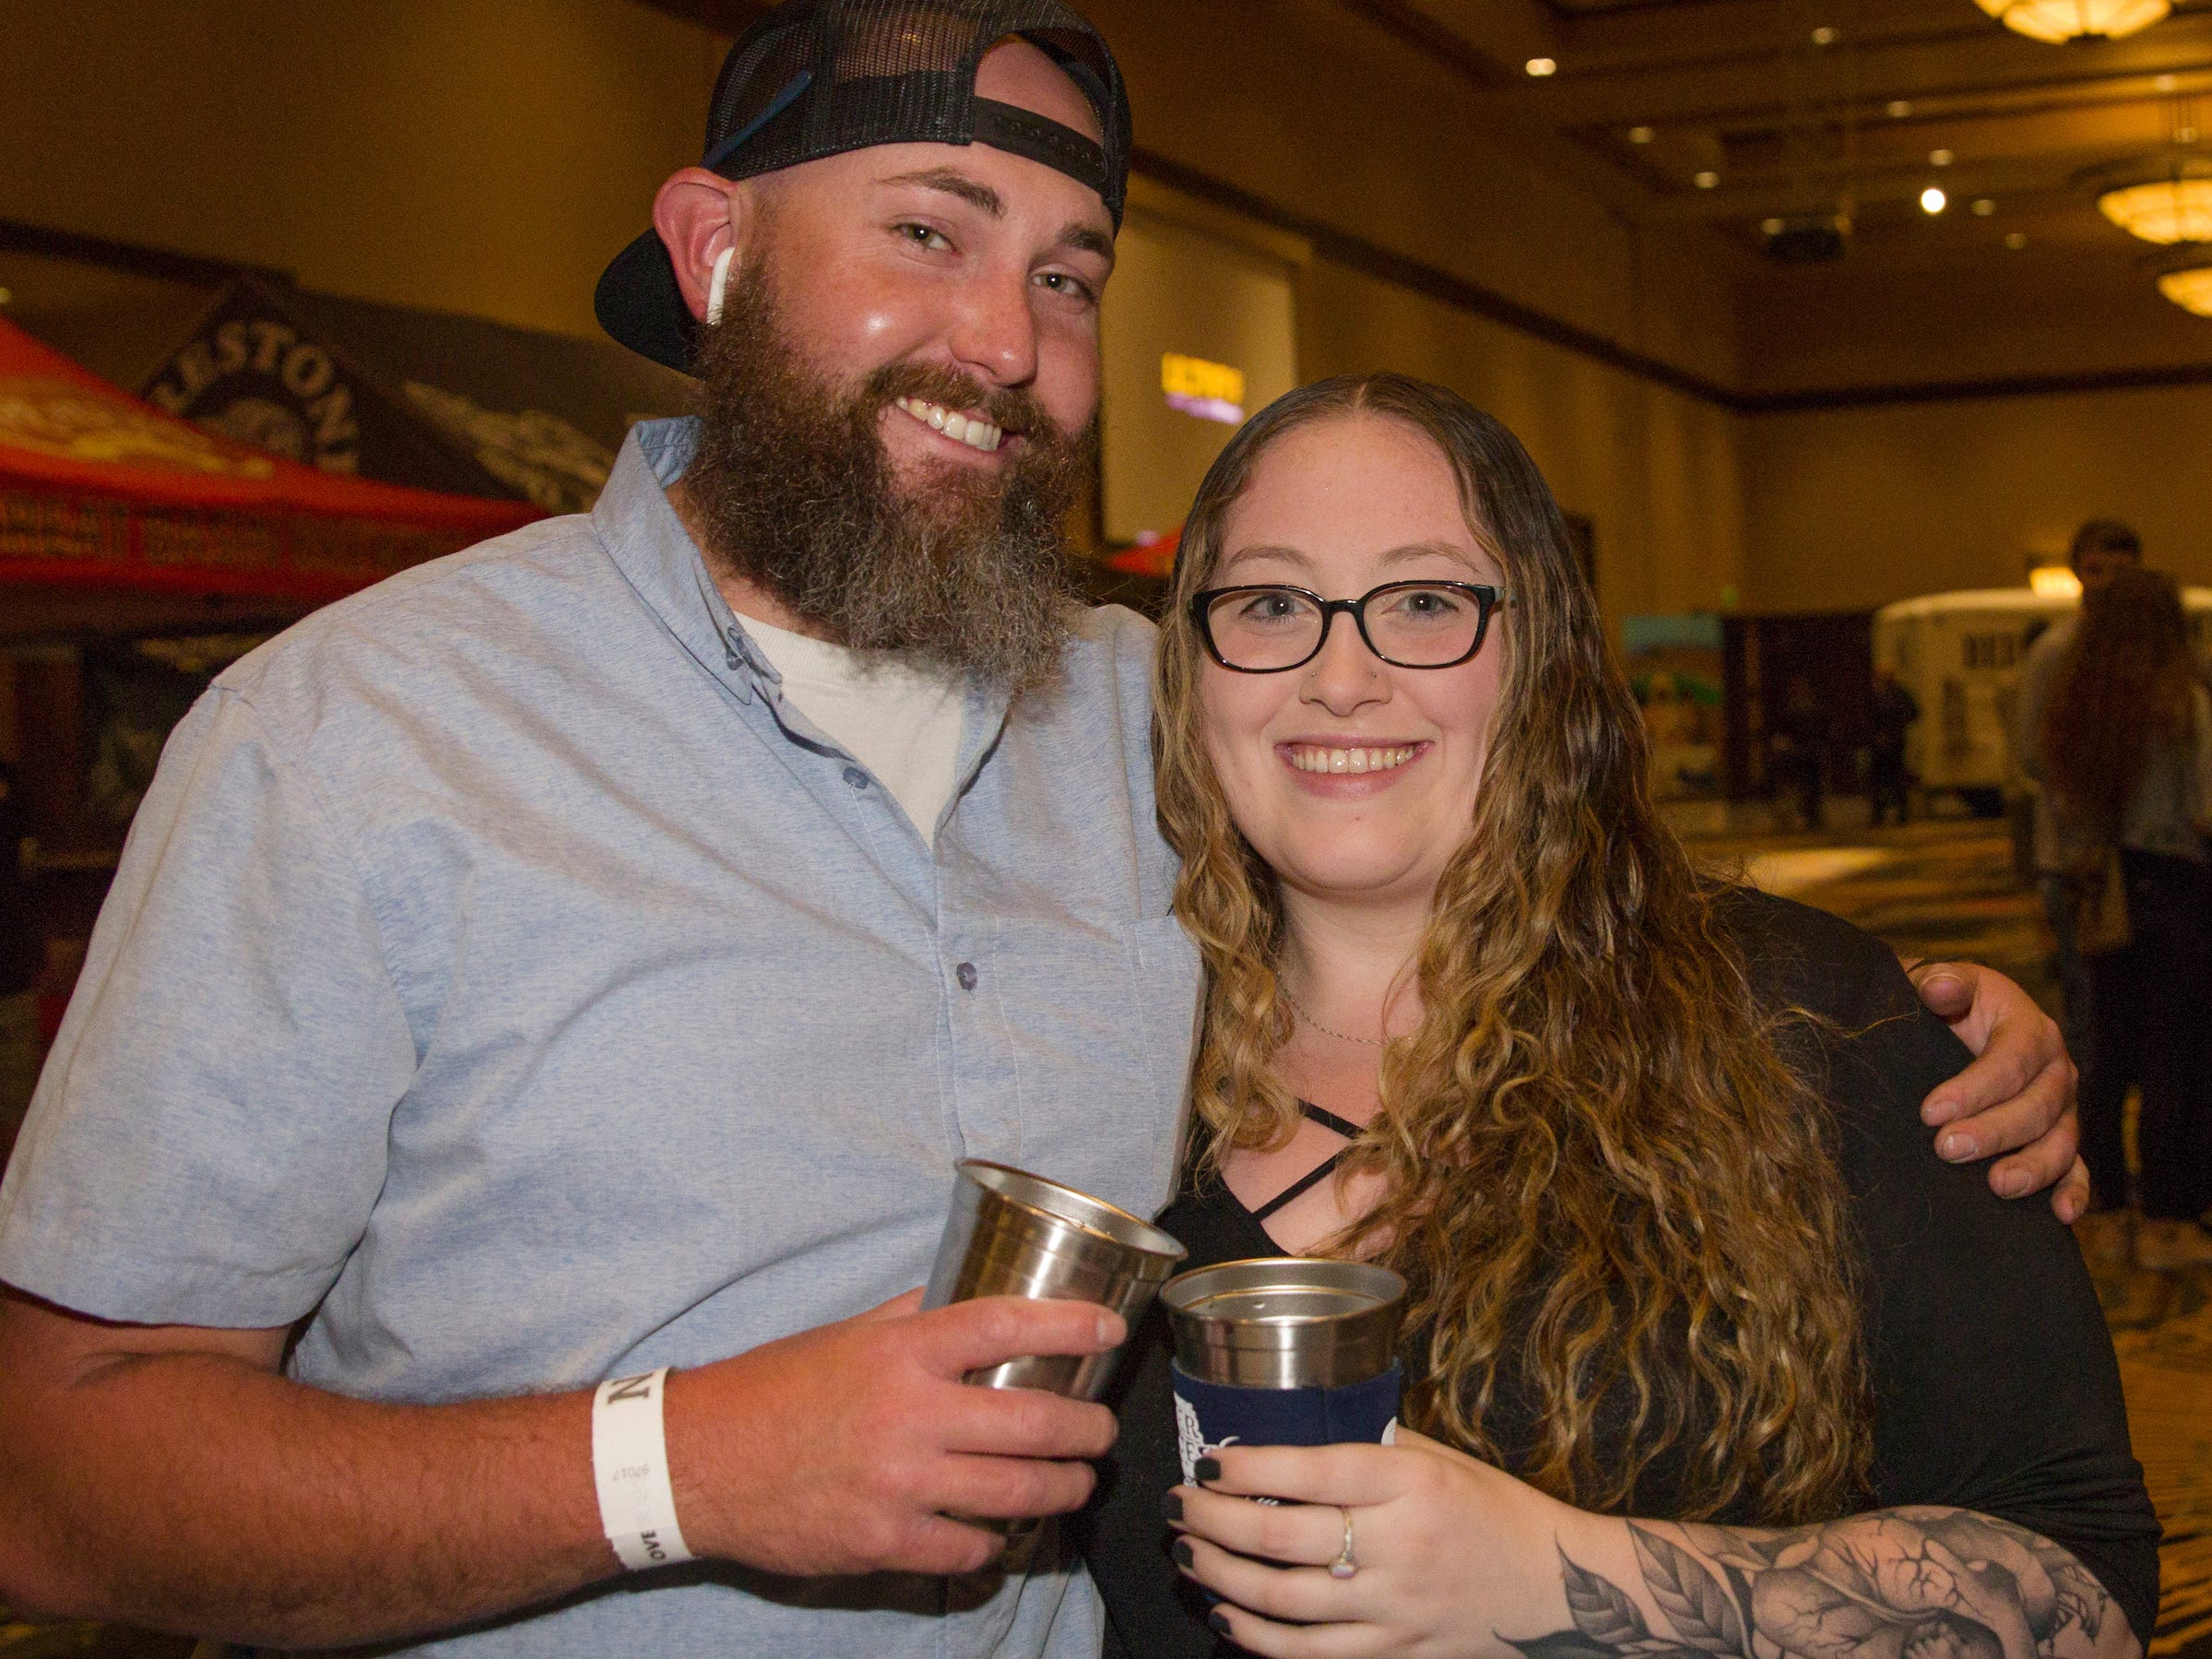 Rich and Hayley during the Young Alumni Beer Fest in the Reno Ballroom in downtown Reno on Friday, May 3, 2019.